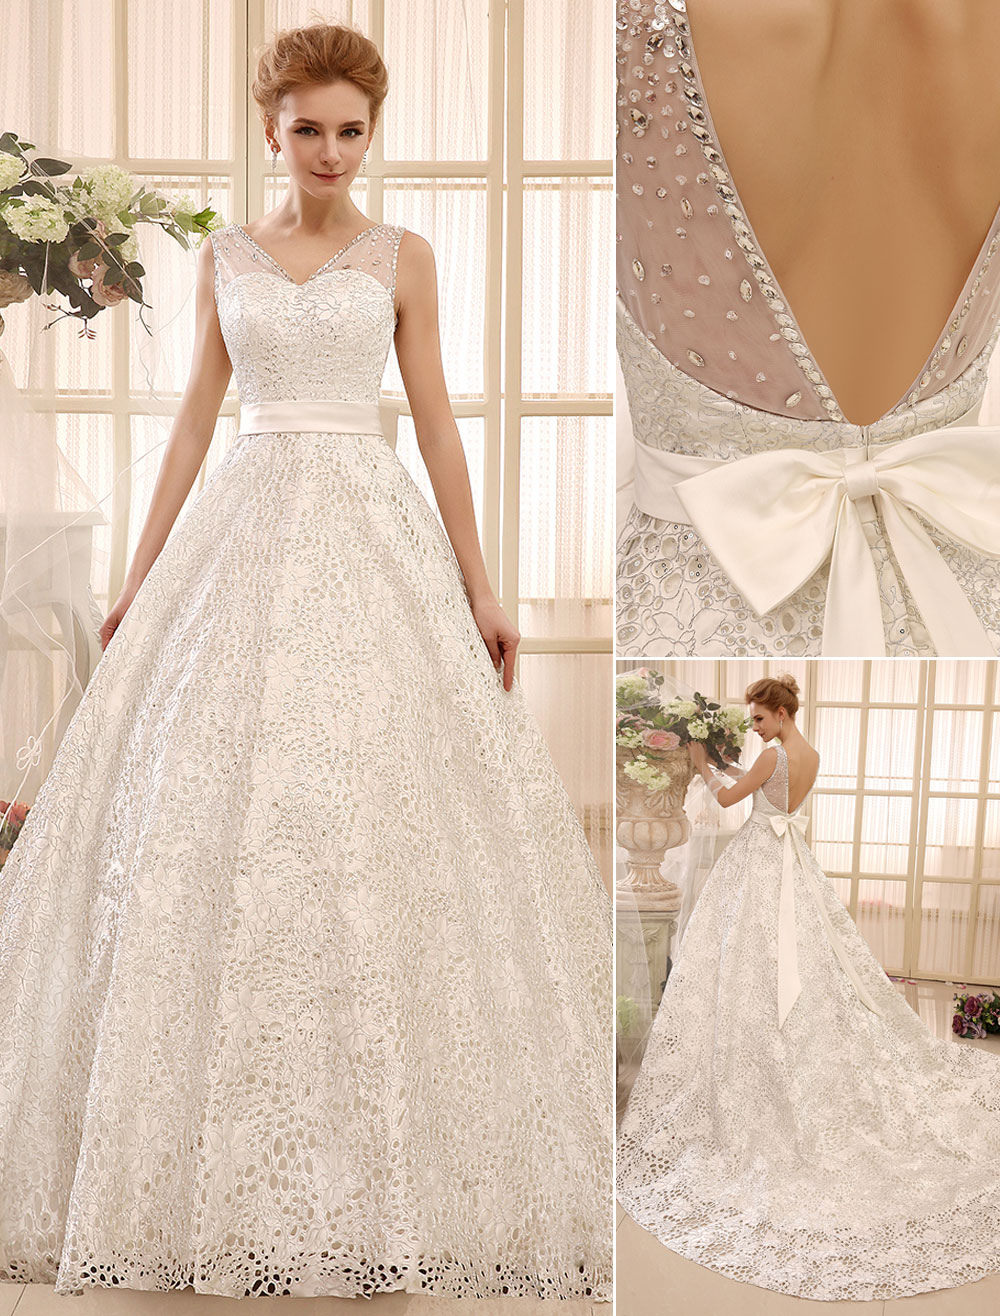 Chapel Train Ivory A-line Bow Satin Bridal Wedding Gown with V-Neck  Milanoo